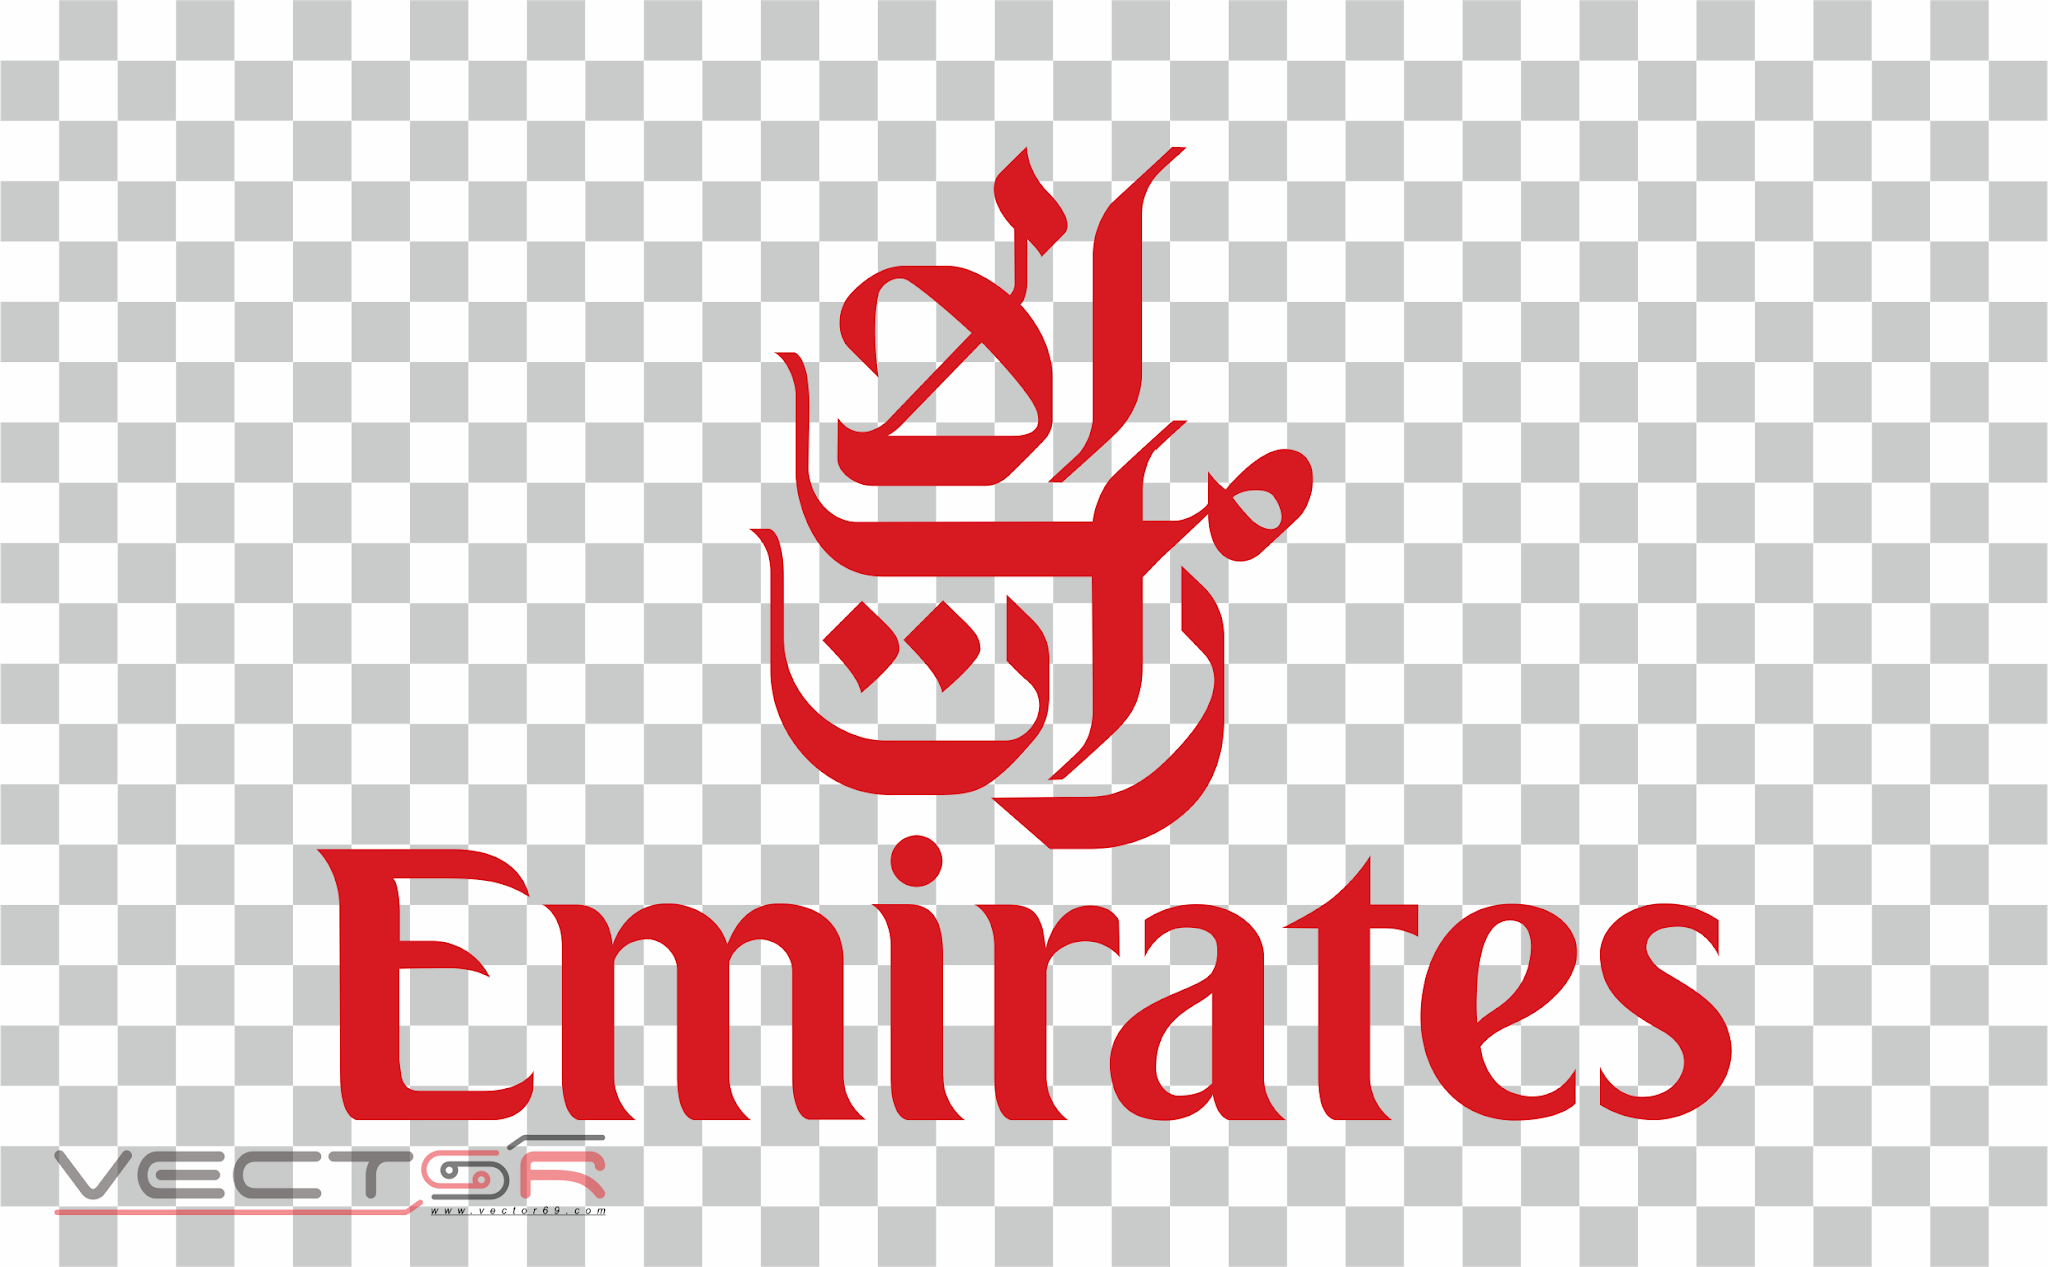 Emirates Airlines Logo - Download .PNG (Portable Network Graphics) Transparent Images